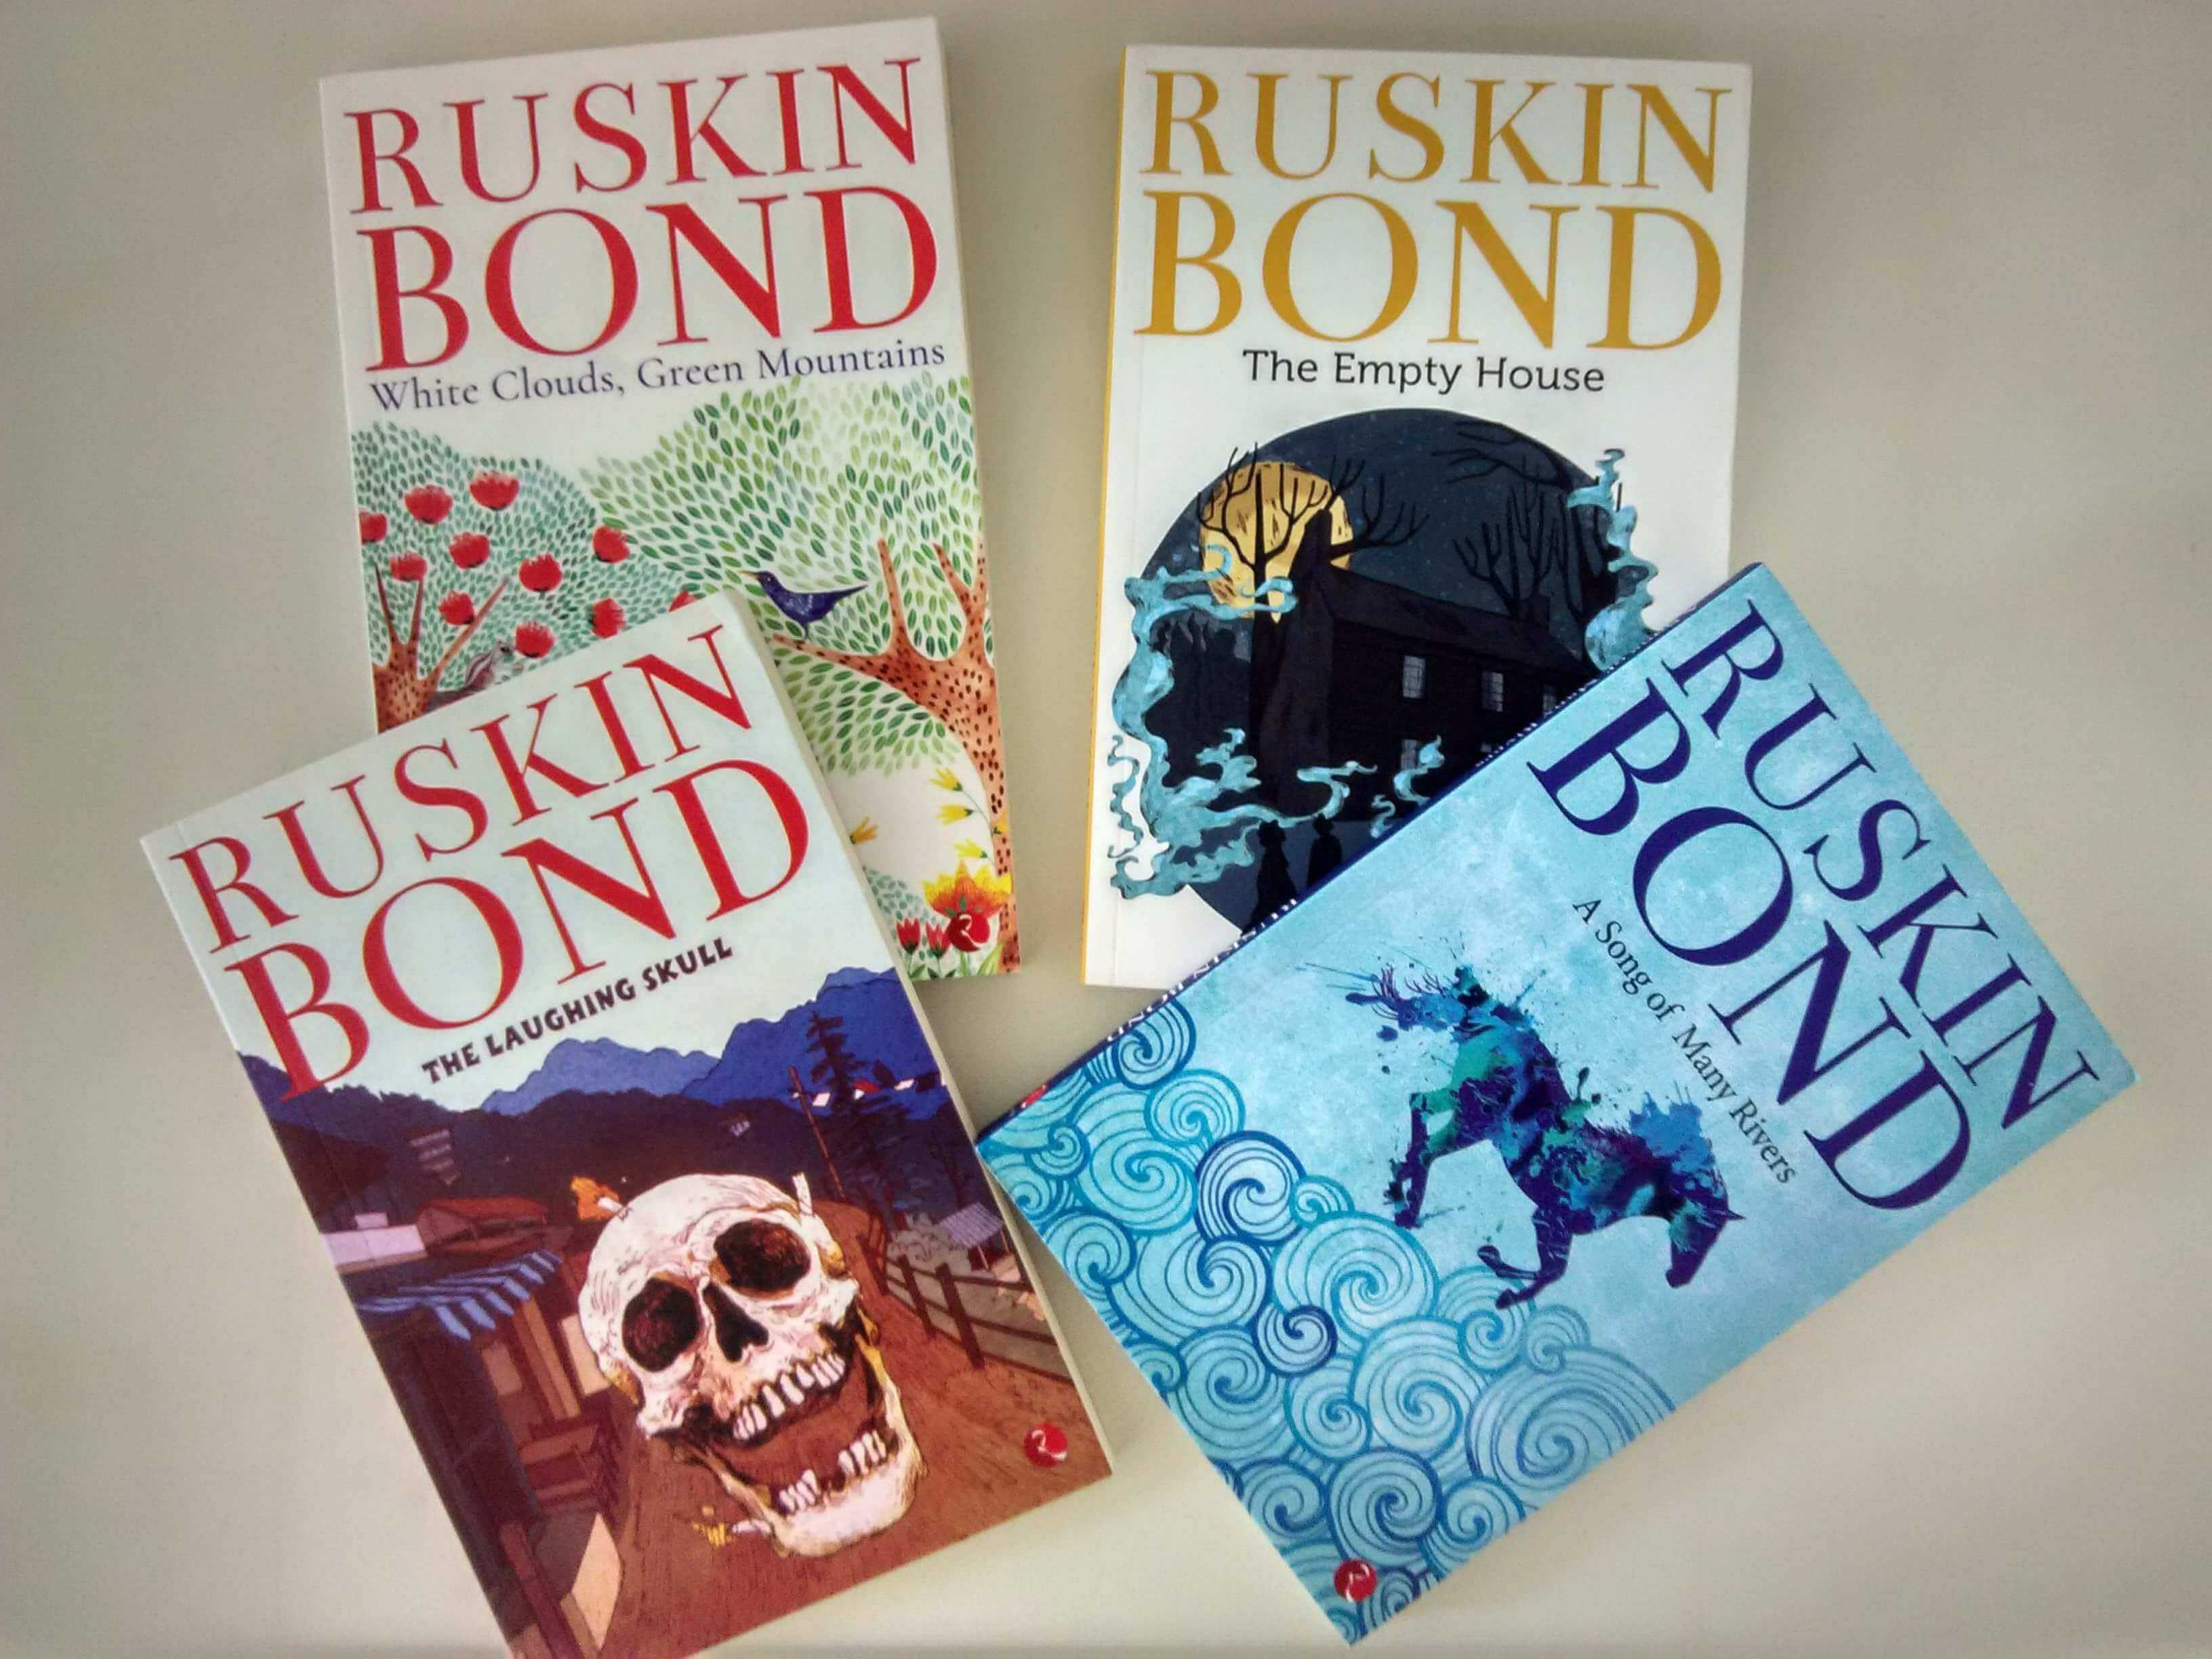 'A Song of Many Rivers', 'The Laughing Skull', 'The Empty House', 'White Clouds, Green Mountains' by Ruskin Bond | Book Review